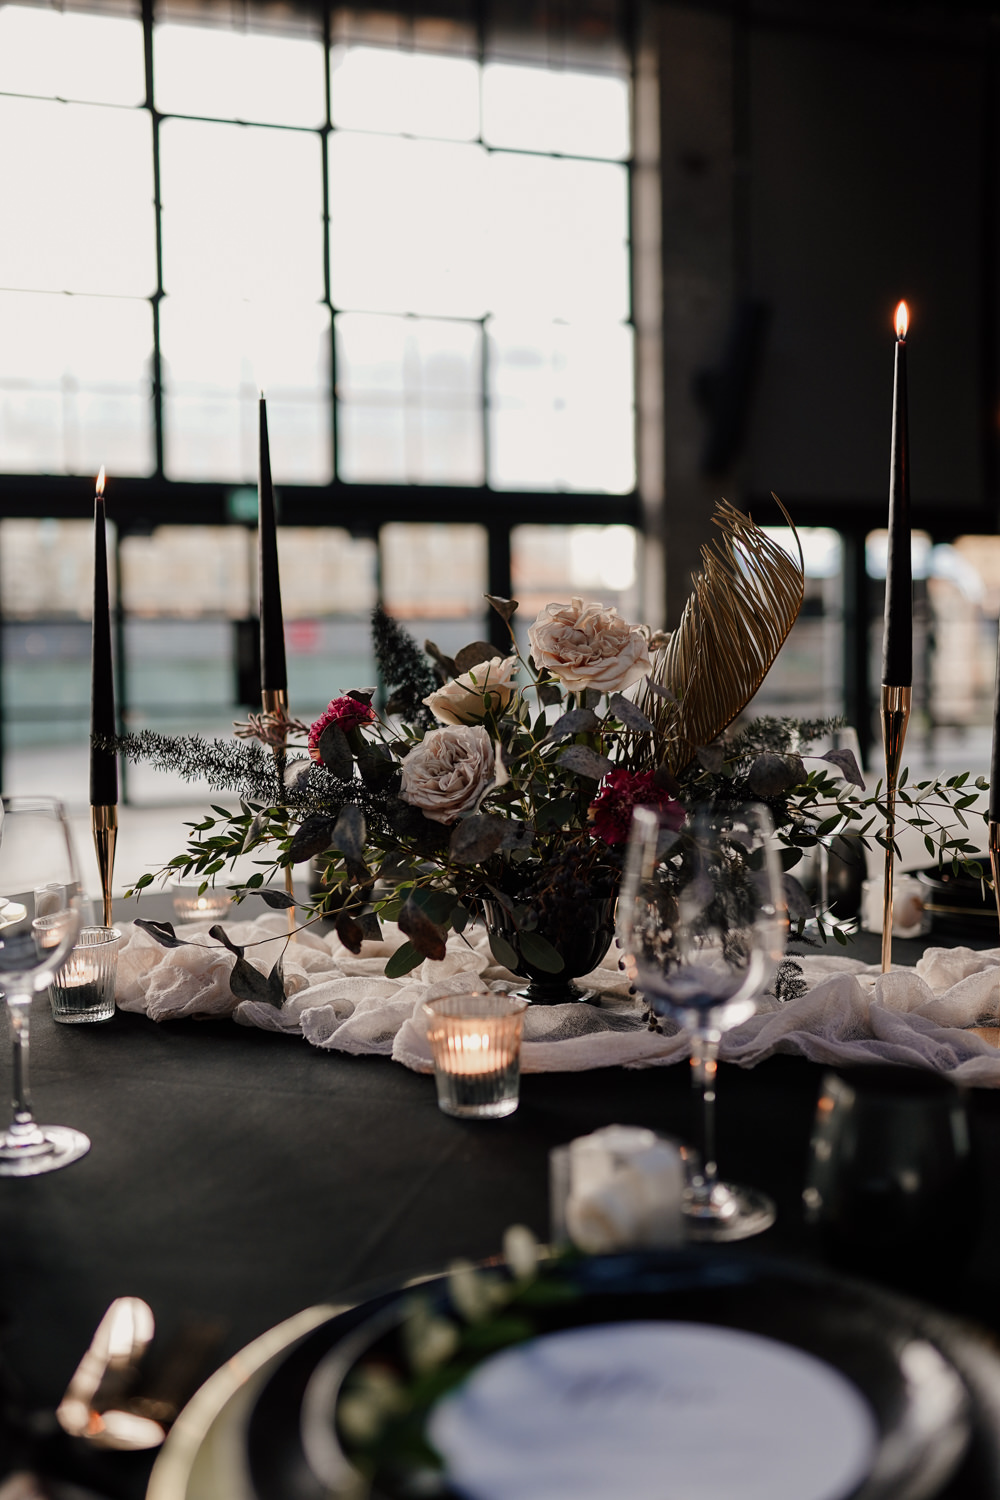 Table Tablescape Decor Black Table Cloth Candles Flowers Pampas Grass Industrial Wedding Ideas Sam Sparks Photography